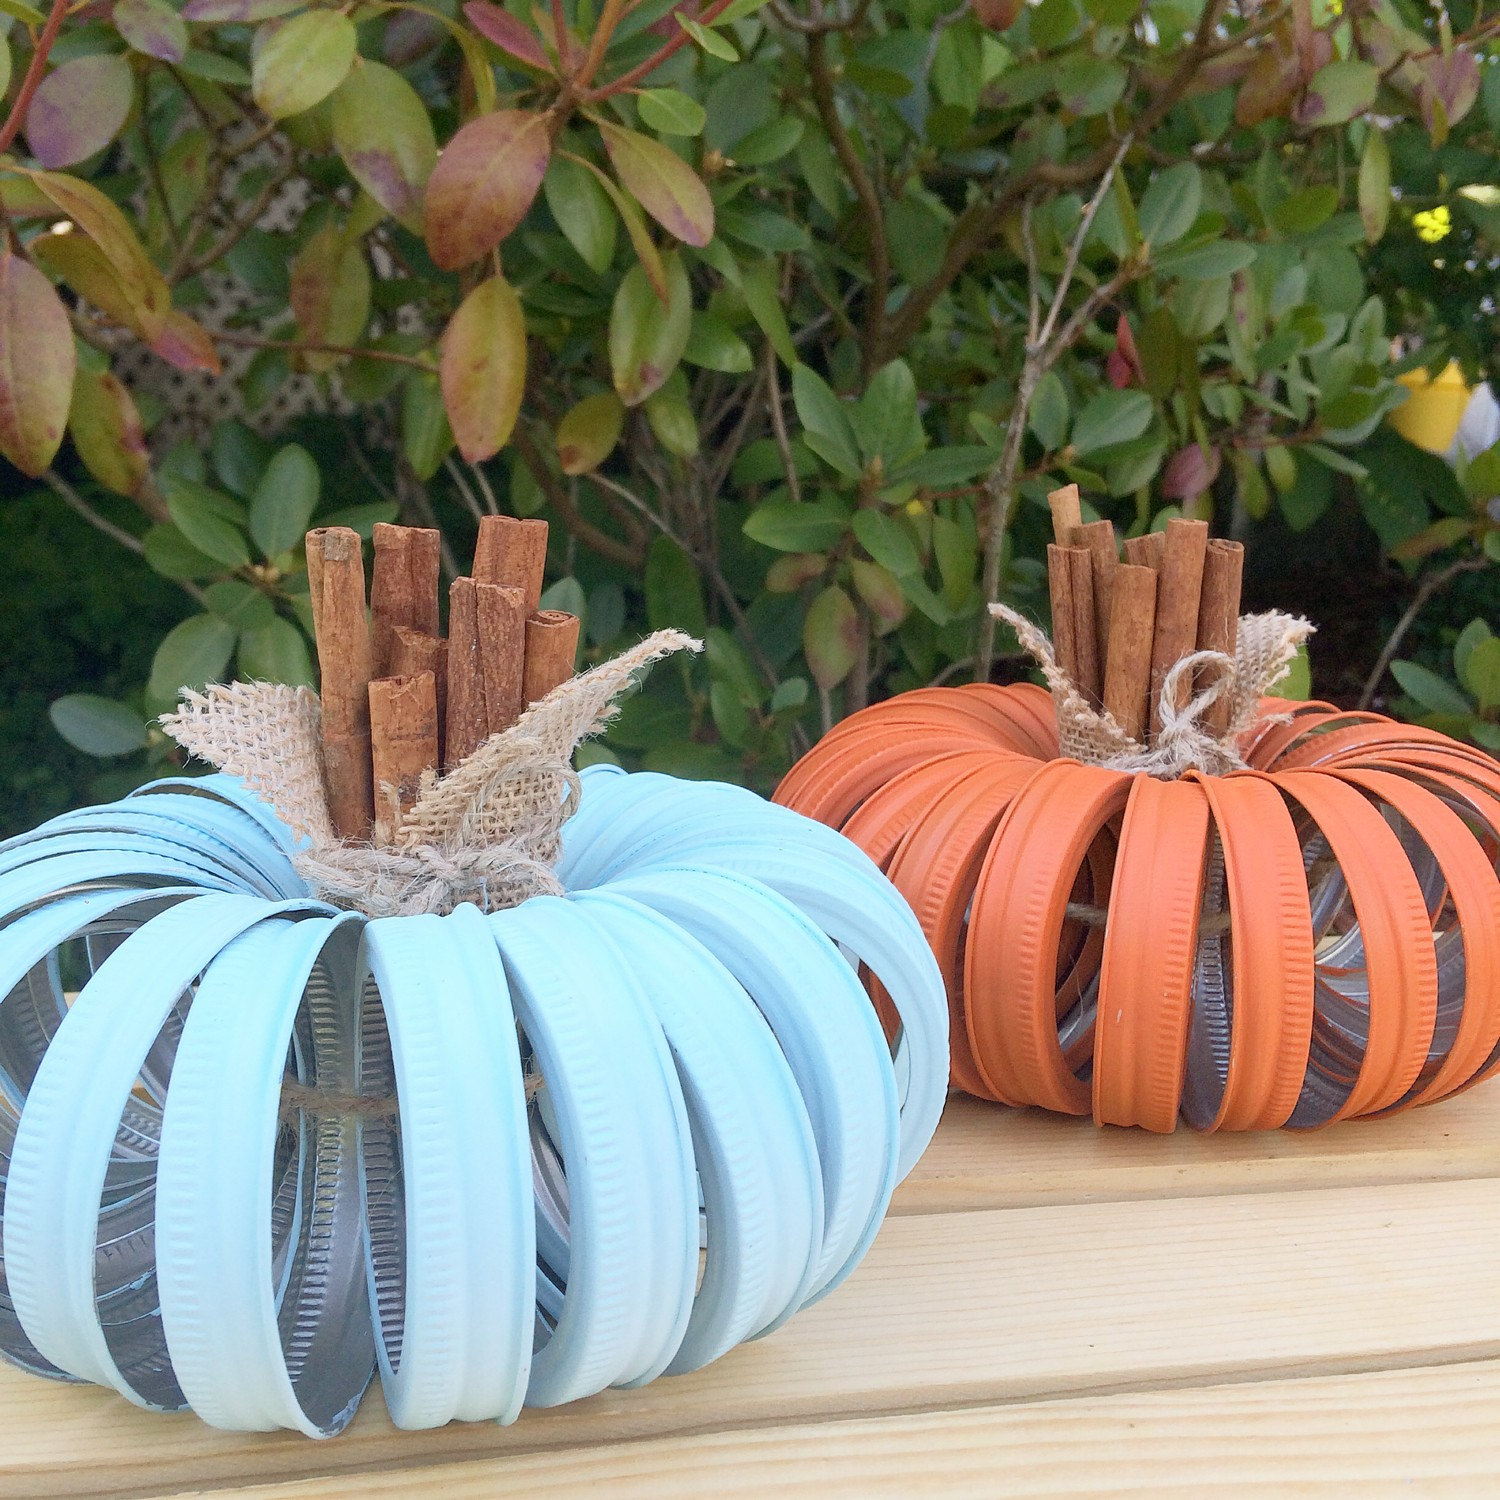 Fall Decorations You Can't Live Without - My List of Lists| Fall Home Decor, Fall Decoration, Fall DIYs, Fall Decoration, Easy to Make Fall Decorations, FAll DIYs, DIY Fall Decor, Fall Decorations, Popular Pins